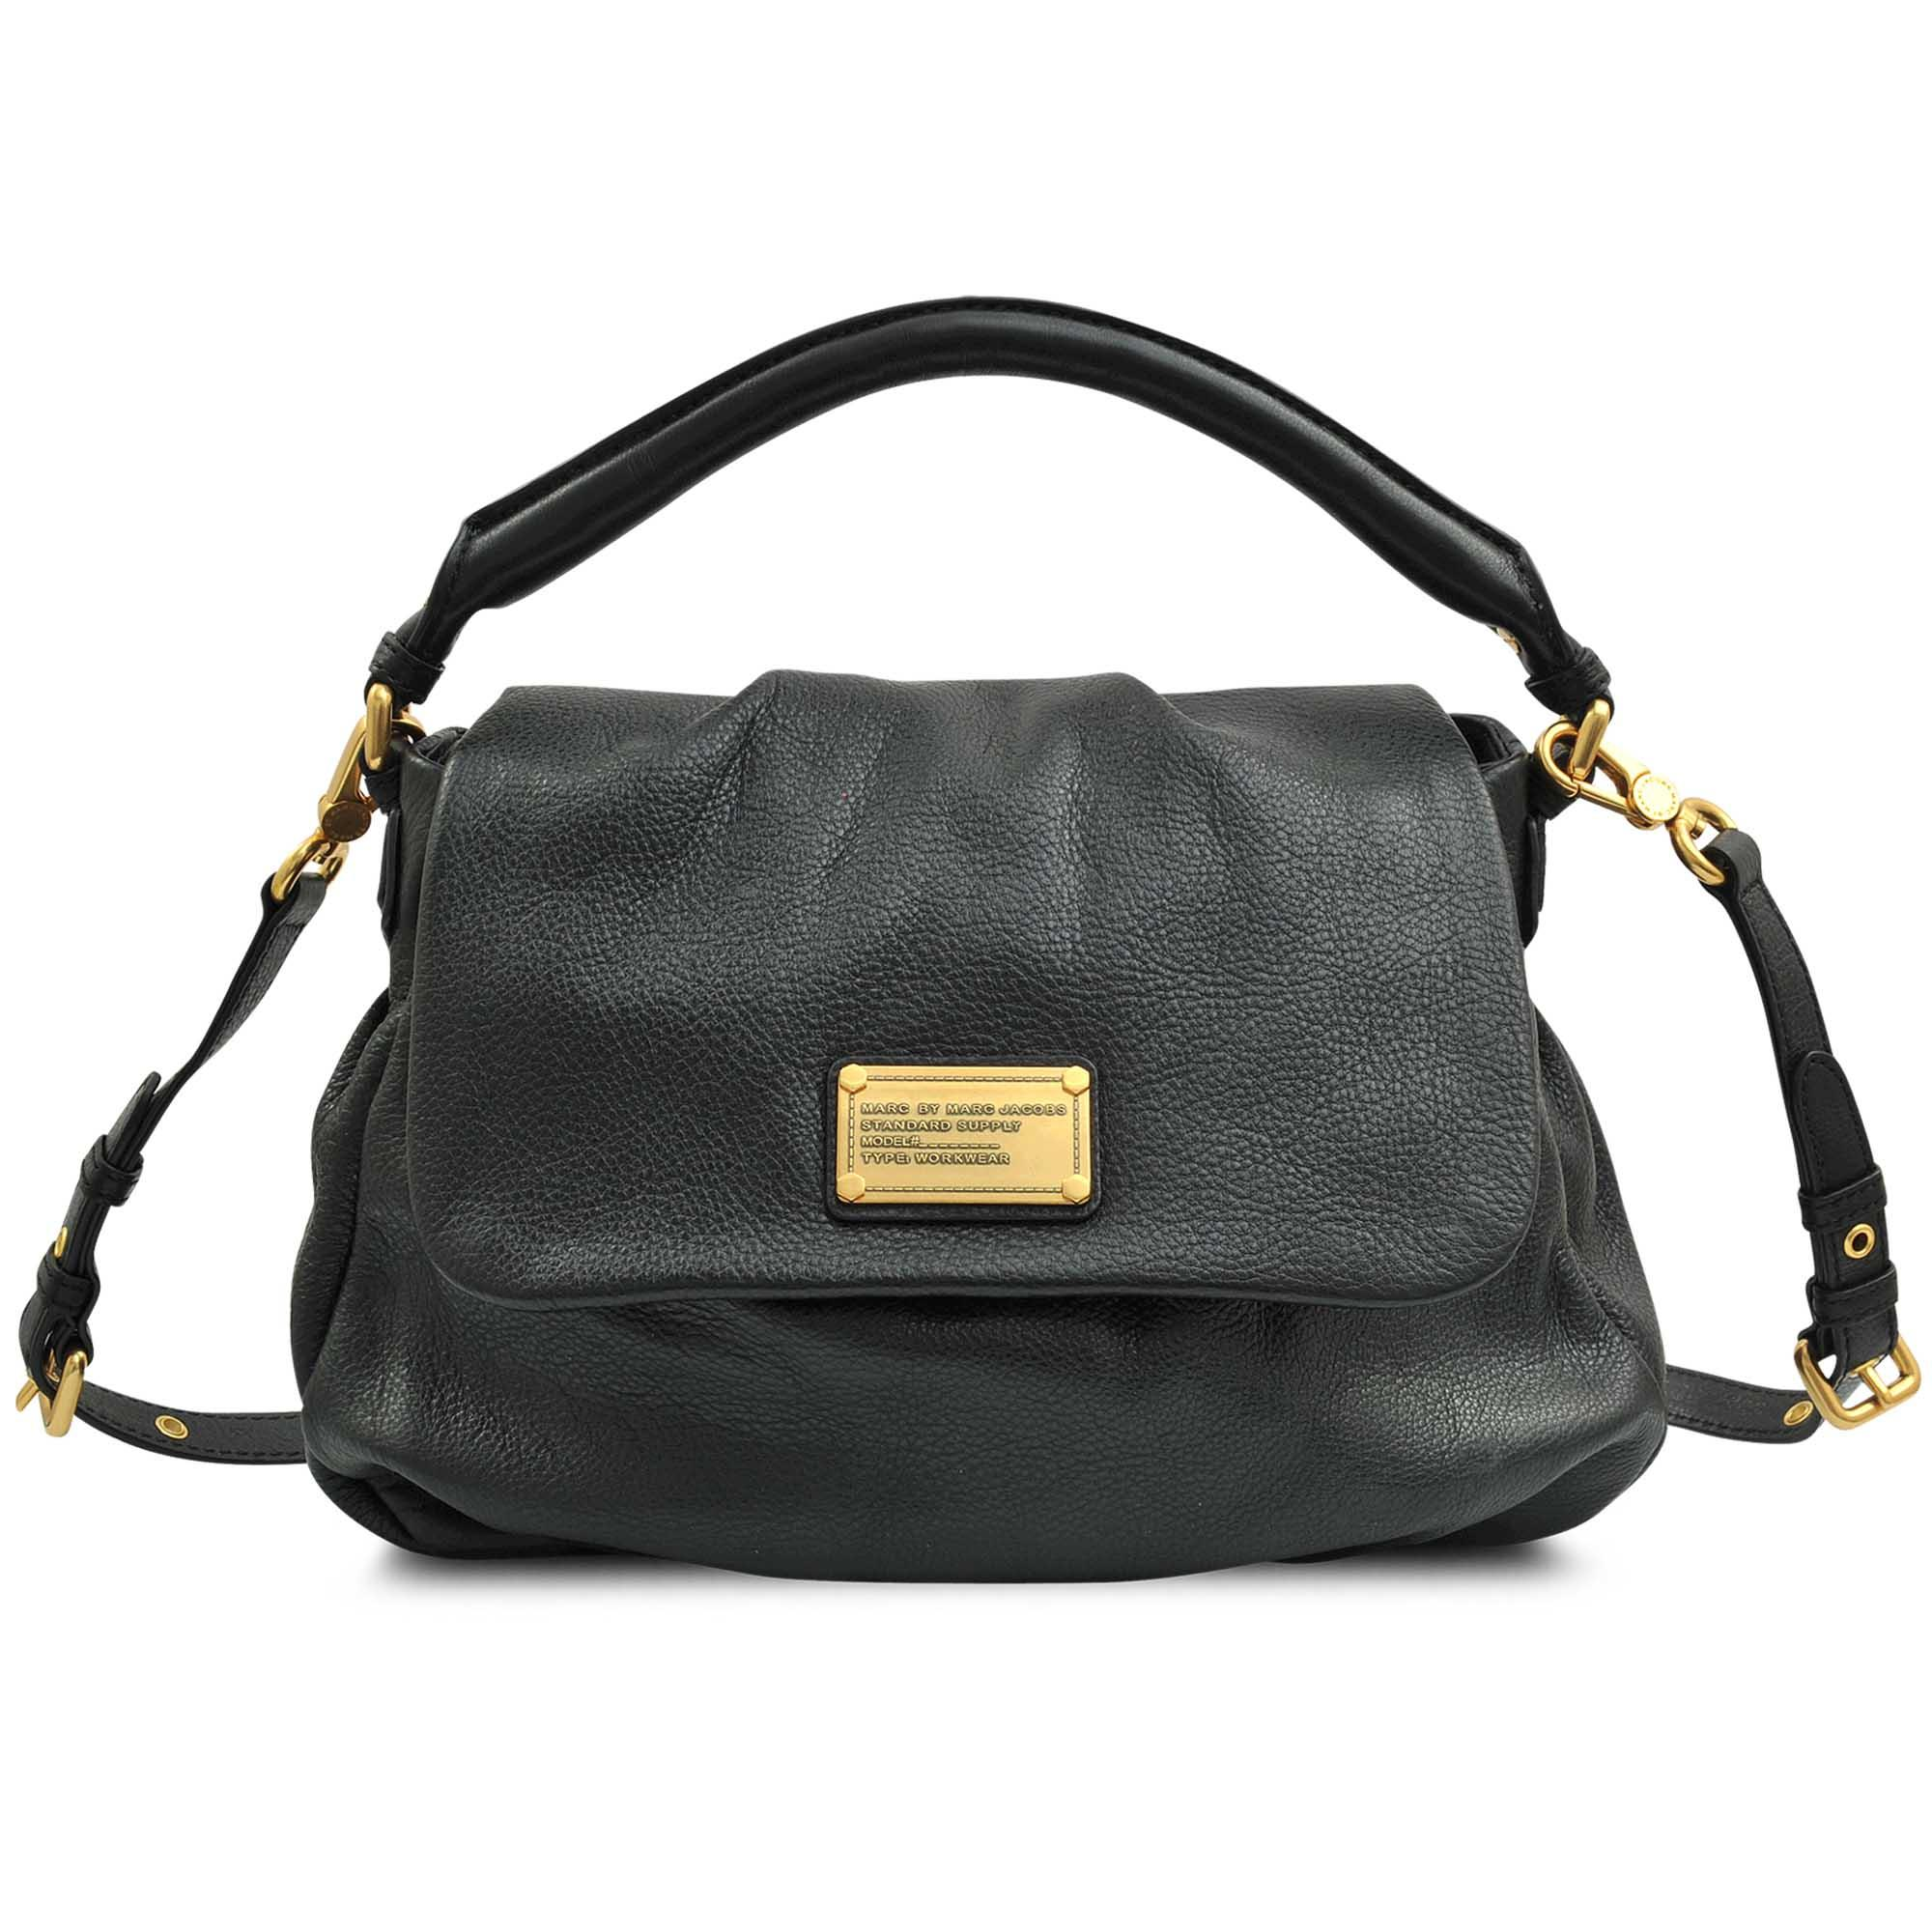 6167fde8d73525 Lyst - Marc By Marc Jacobs Lil Ukita Classic Q Hobo Bag in Black